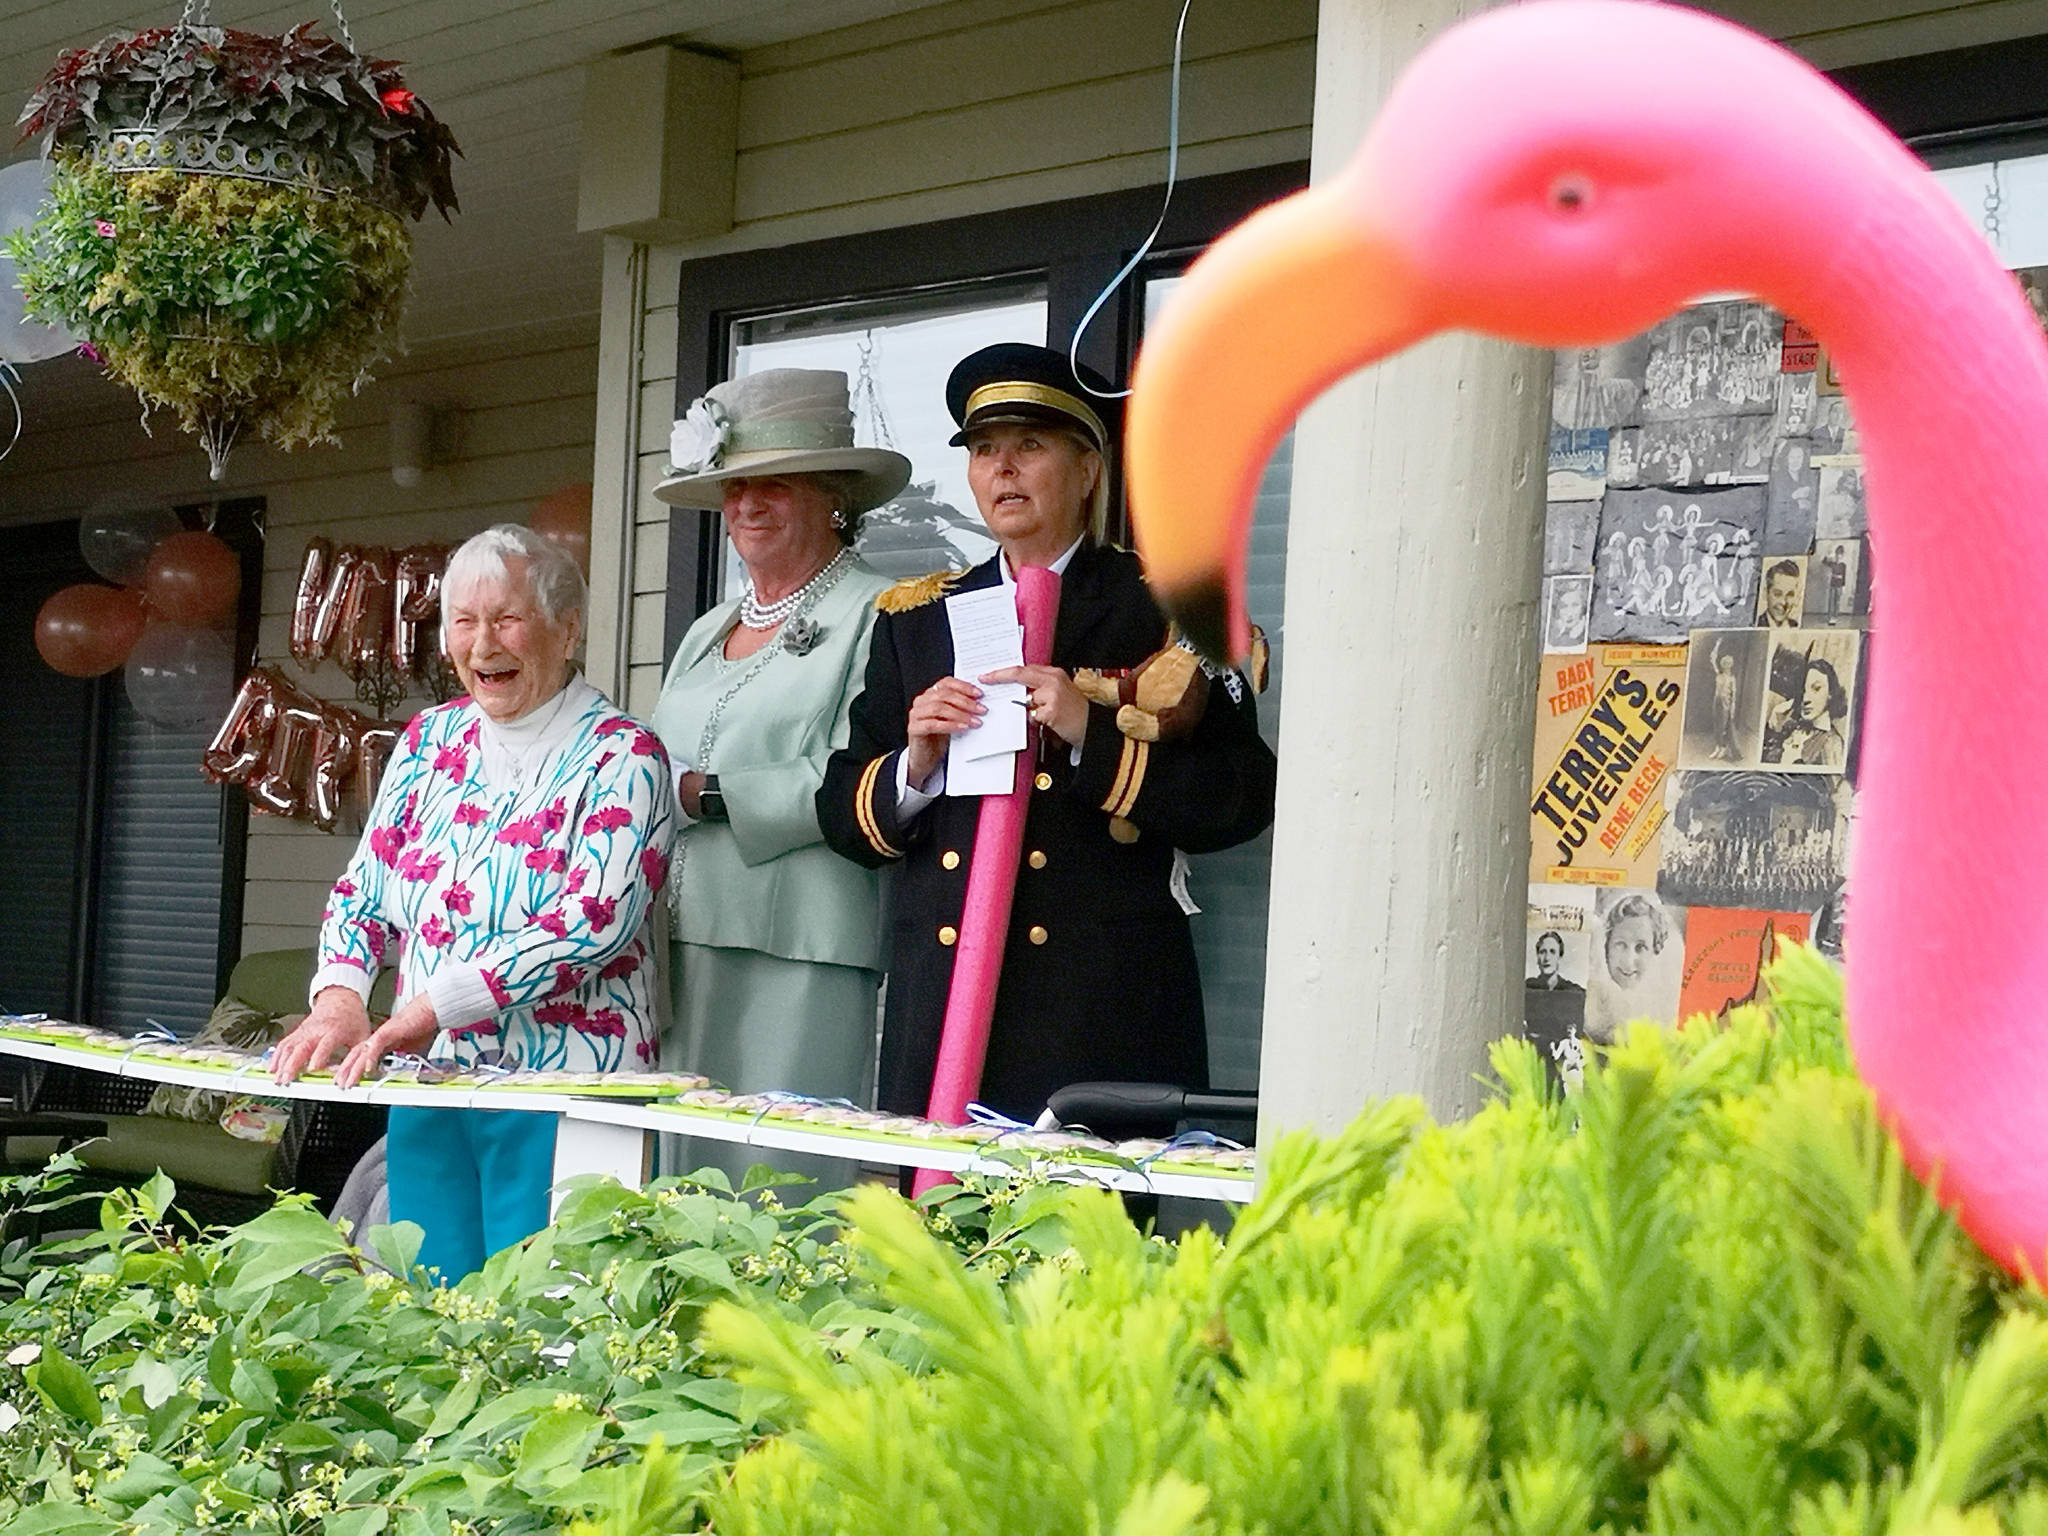 Dorothy McKilligan (centre) gets a surprise visit from 'The Queen' – played by son Andrew (and Prince Philip, played by daughter-in-law Thyra) during 100th birthday celebrations at her Nicowynd residence on May 20.(Tracy Holmes photo)